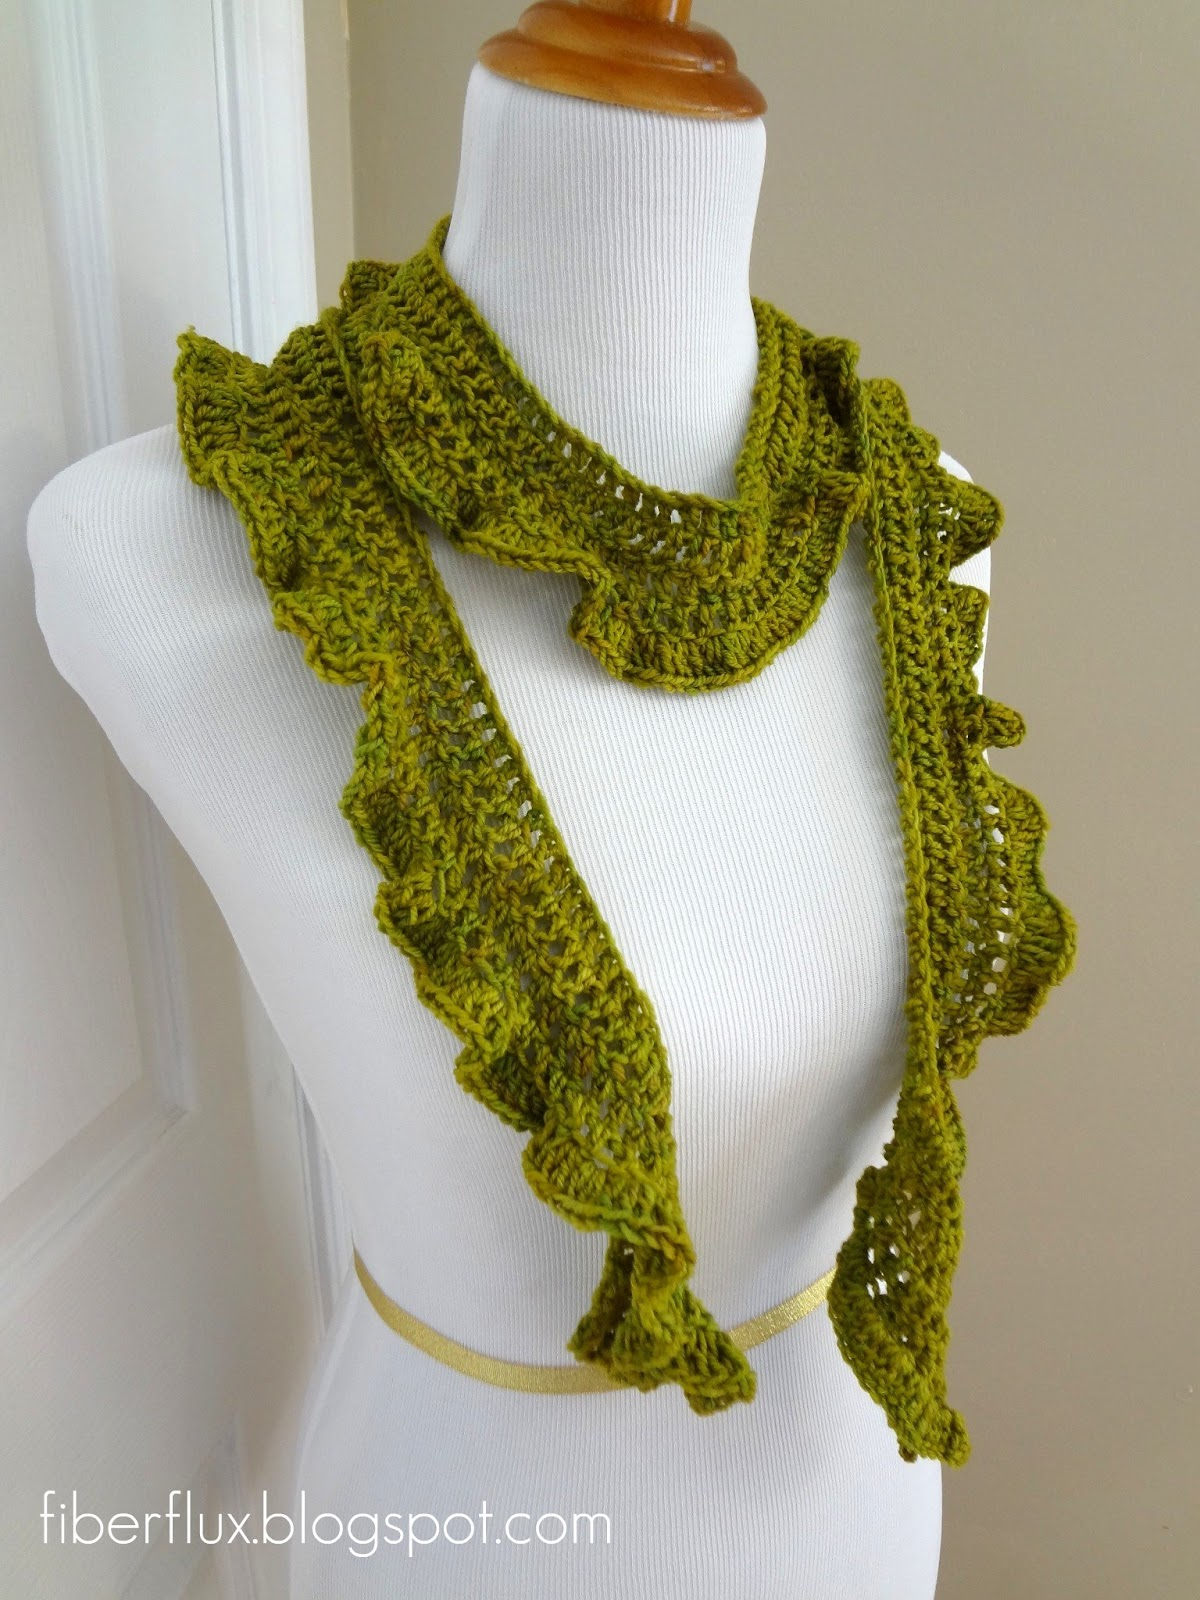 Free Crochet Patterns For Lightweight Scarves : Fiber Flux: Free Crochet Pattern... Arugula Scarf